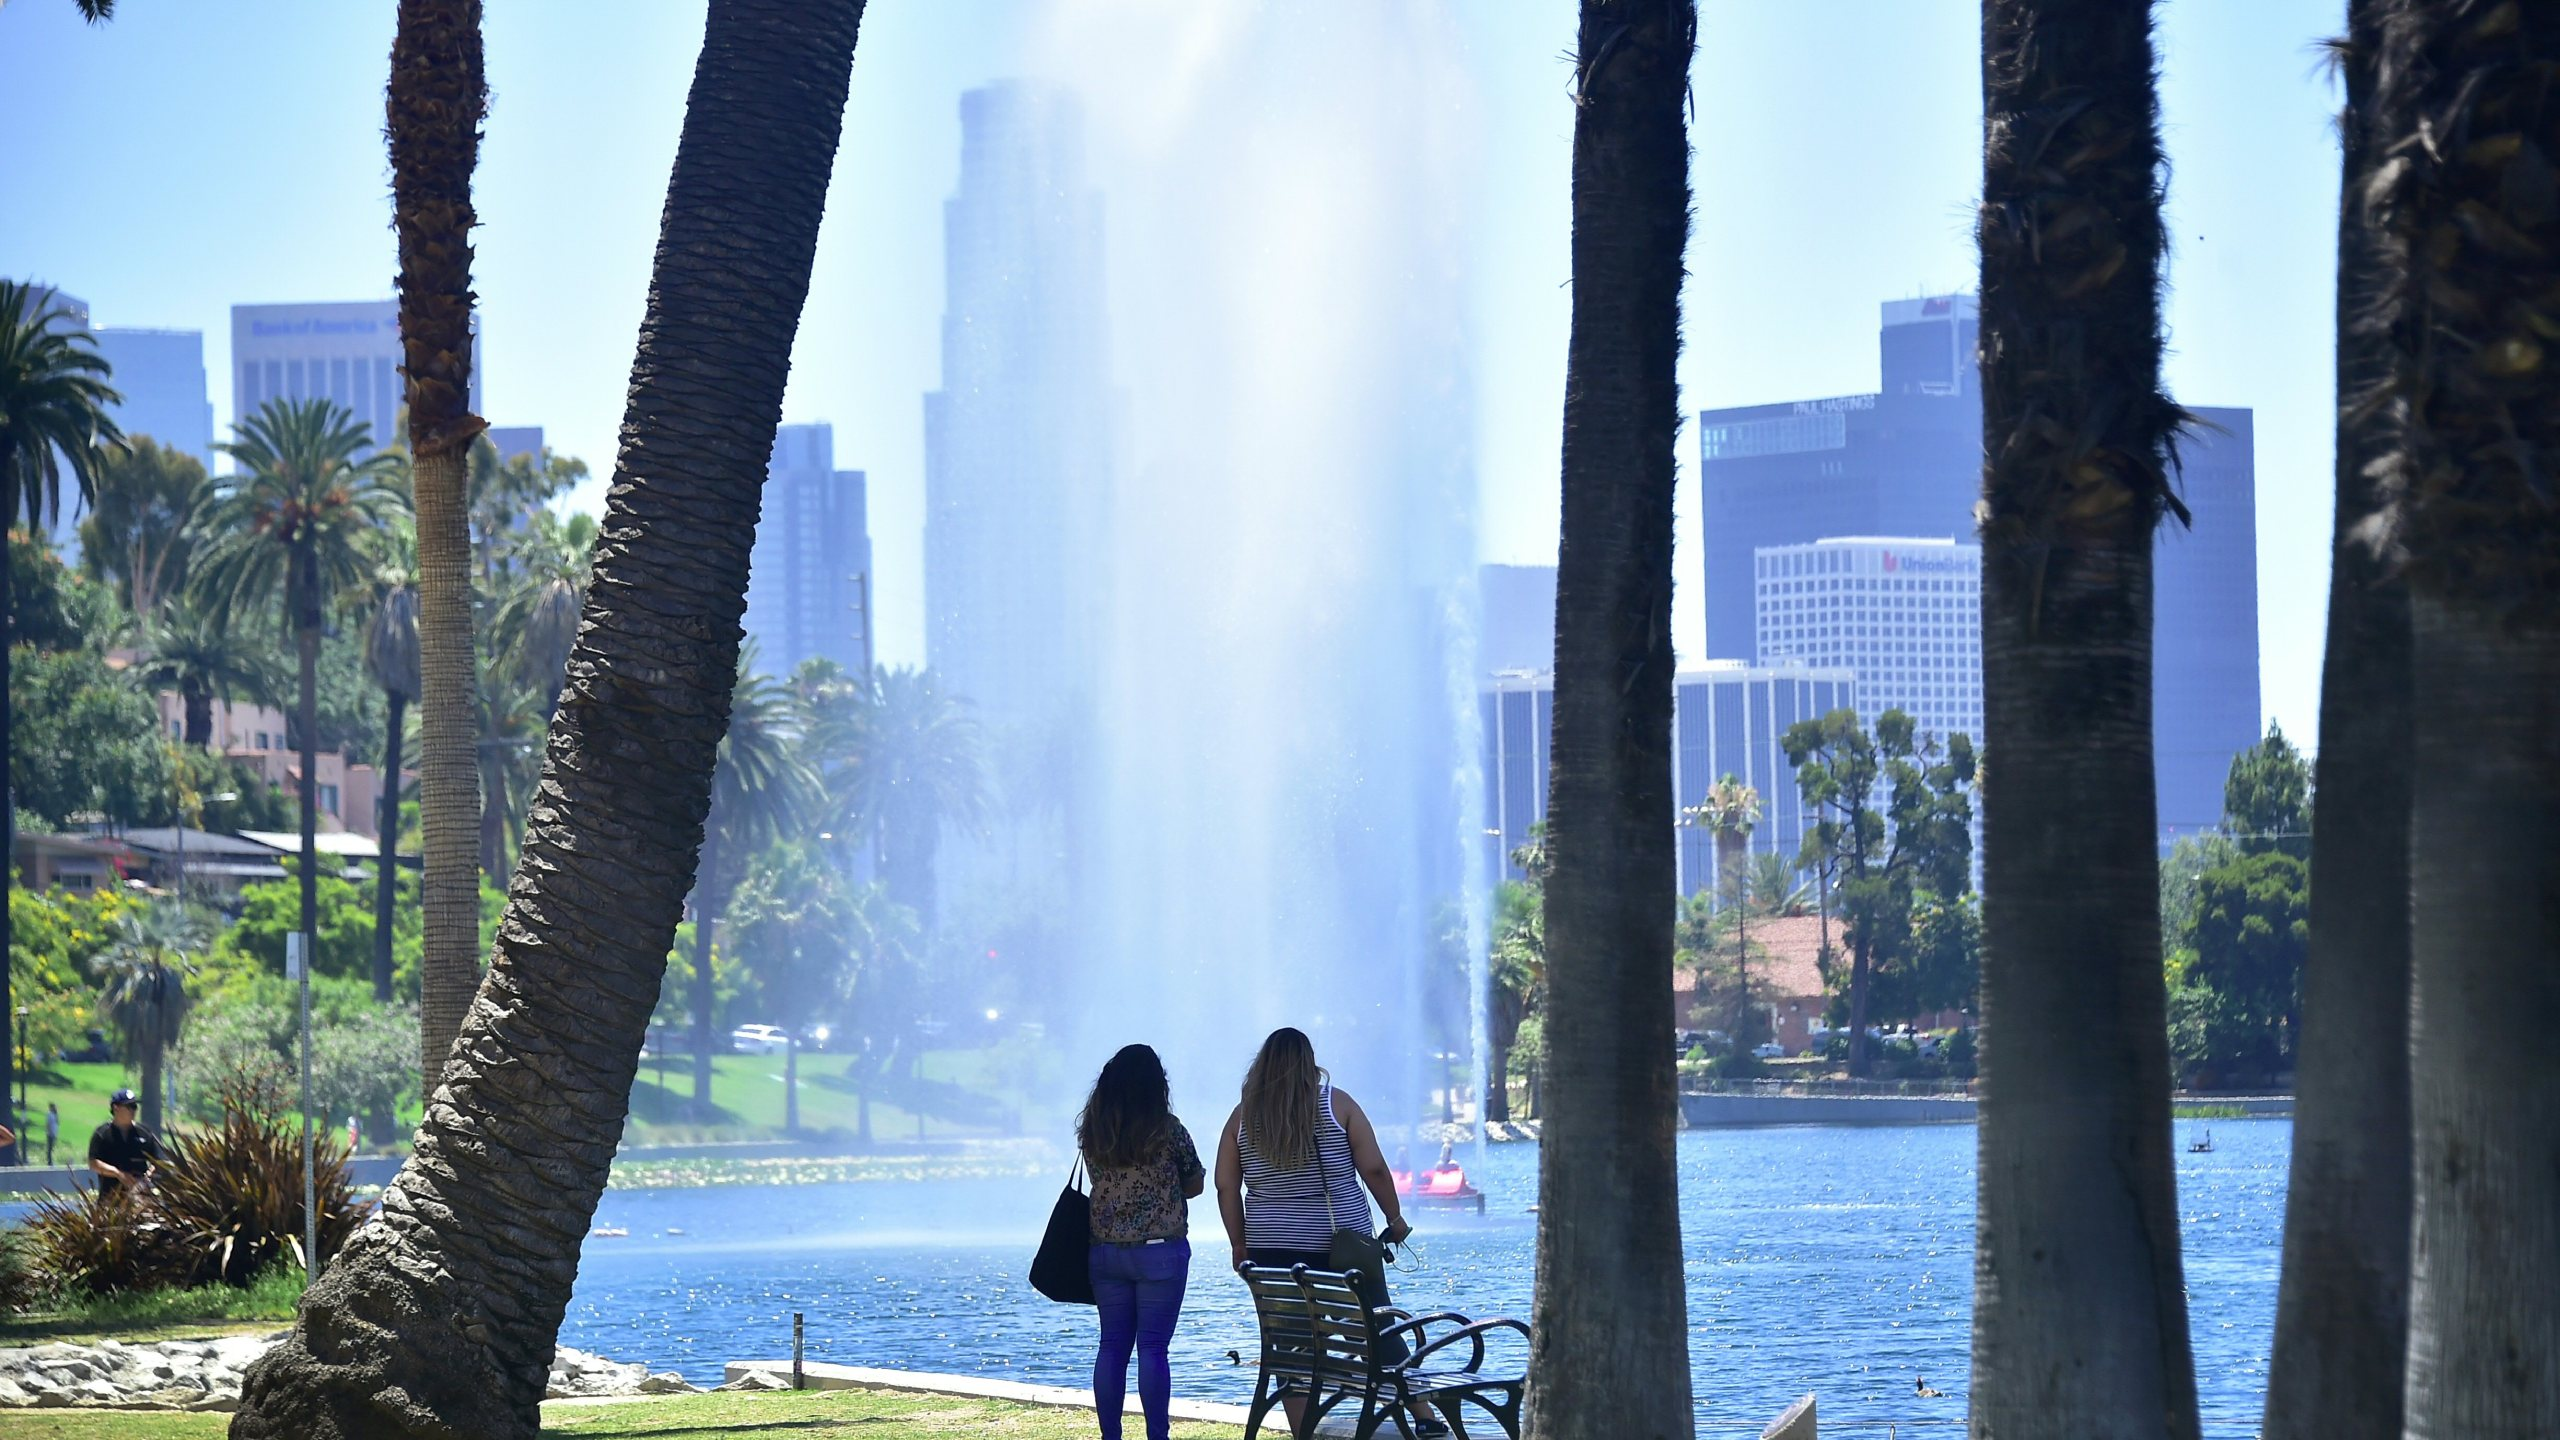 Women cool off with a view of a fountain and sprinkles of water blowing in the breeze at Echo Park lake on June 26, 2017. (FREDERIC J. BROWN/AFP via Getty Images)